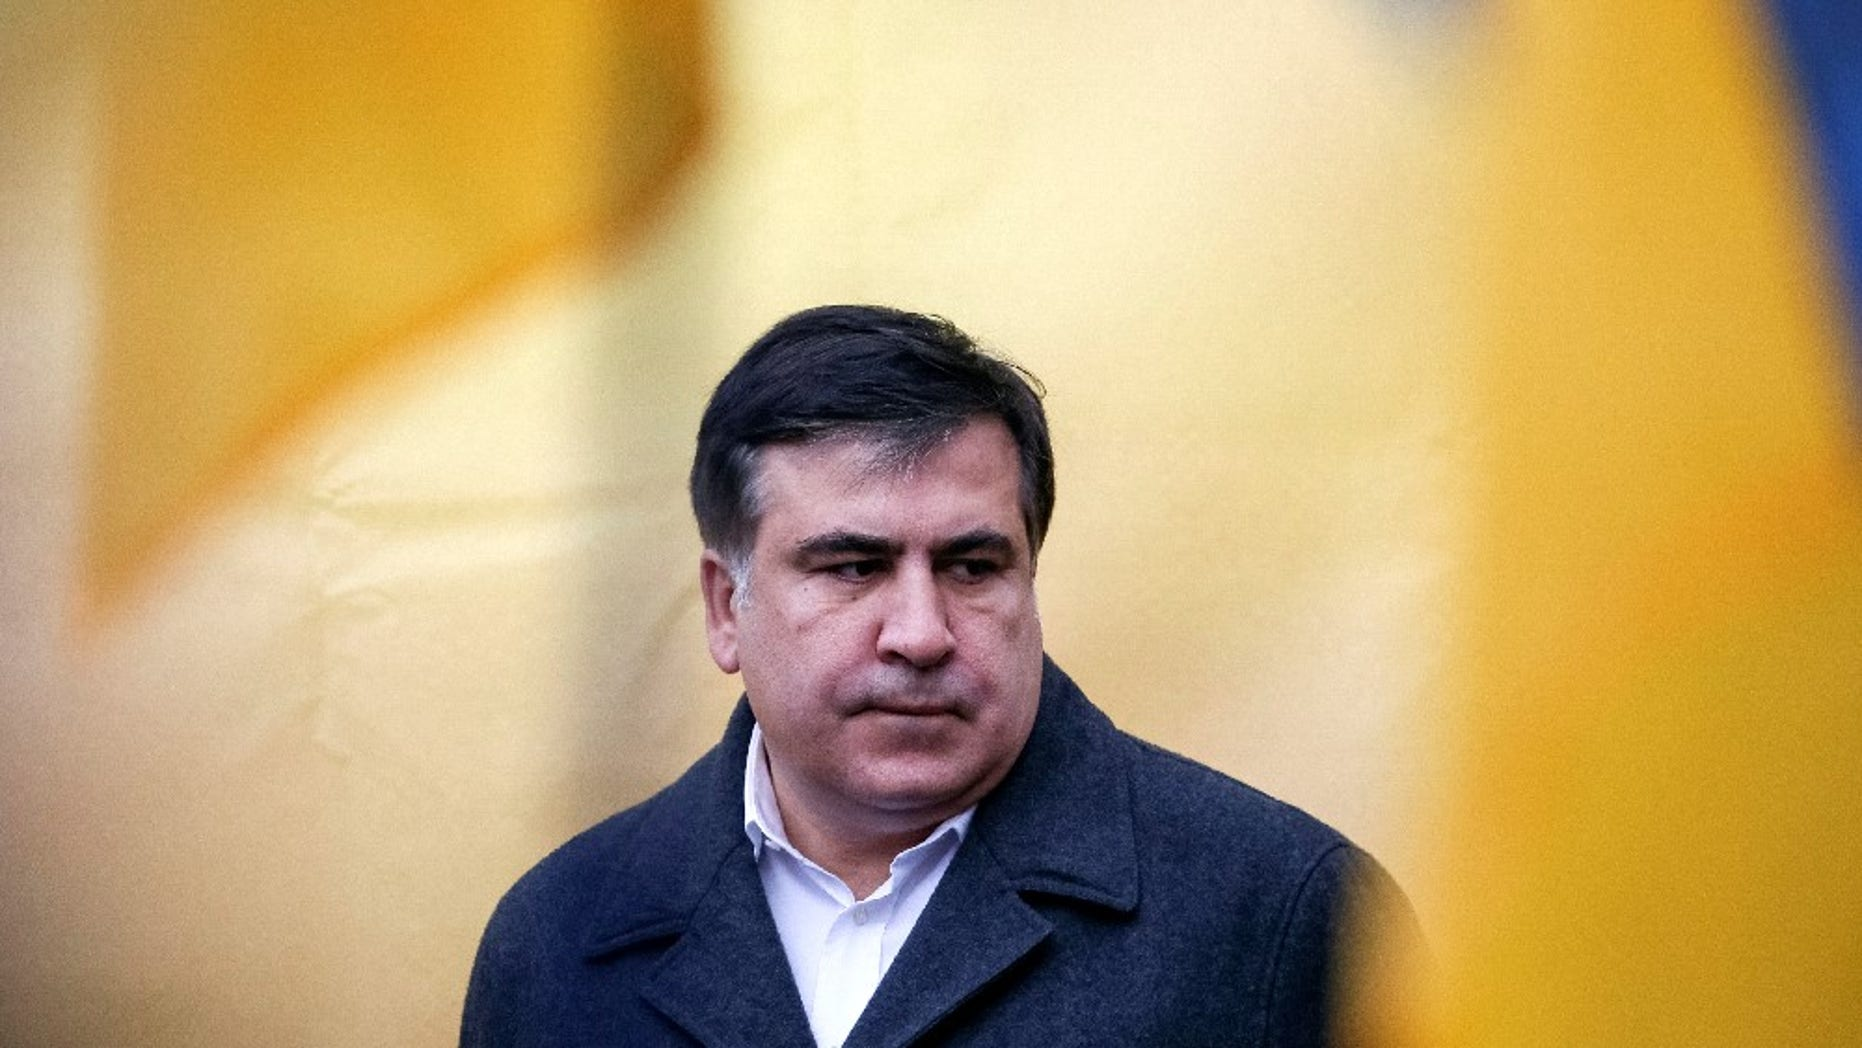 FILE -- Former Georgian President and former governor of Odessa region Mikheil Saakashvili attends anti-government and in support of him rally in central Kiev, Ukraine, November 27, 2016.